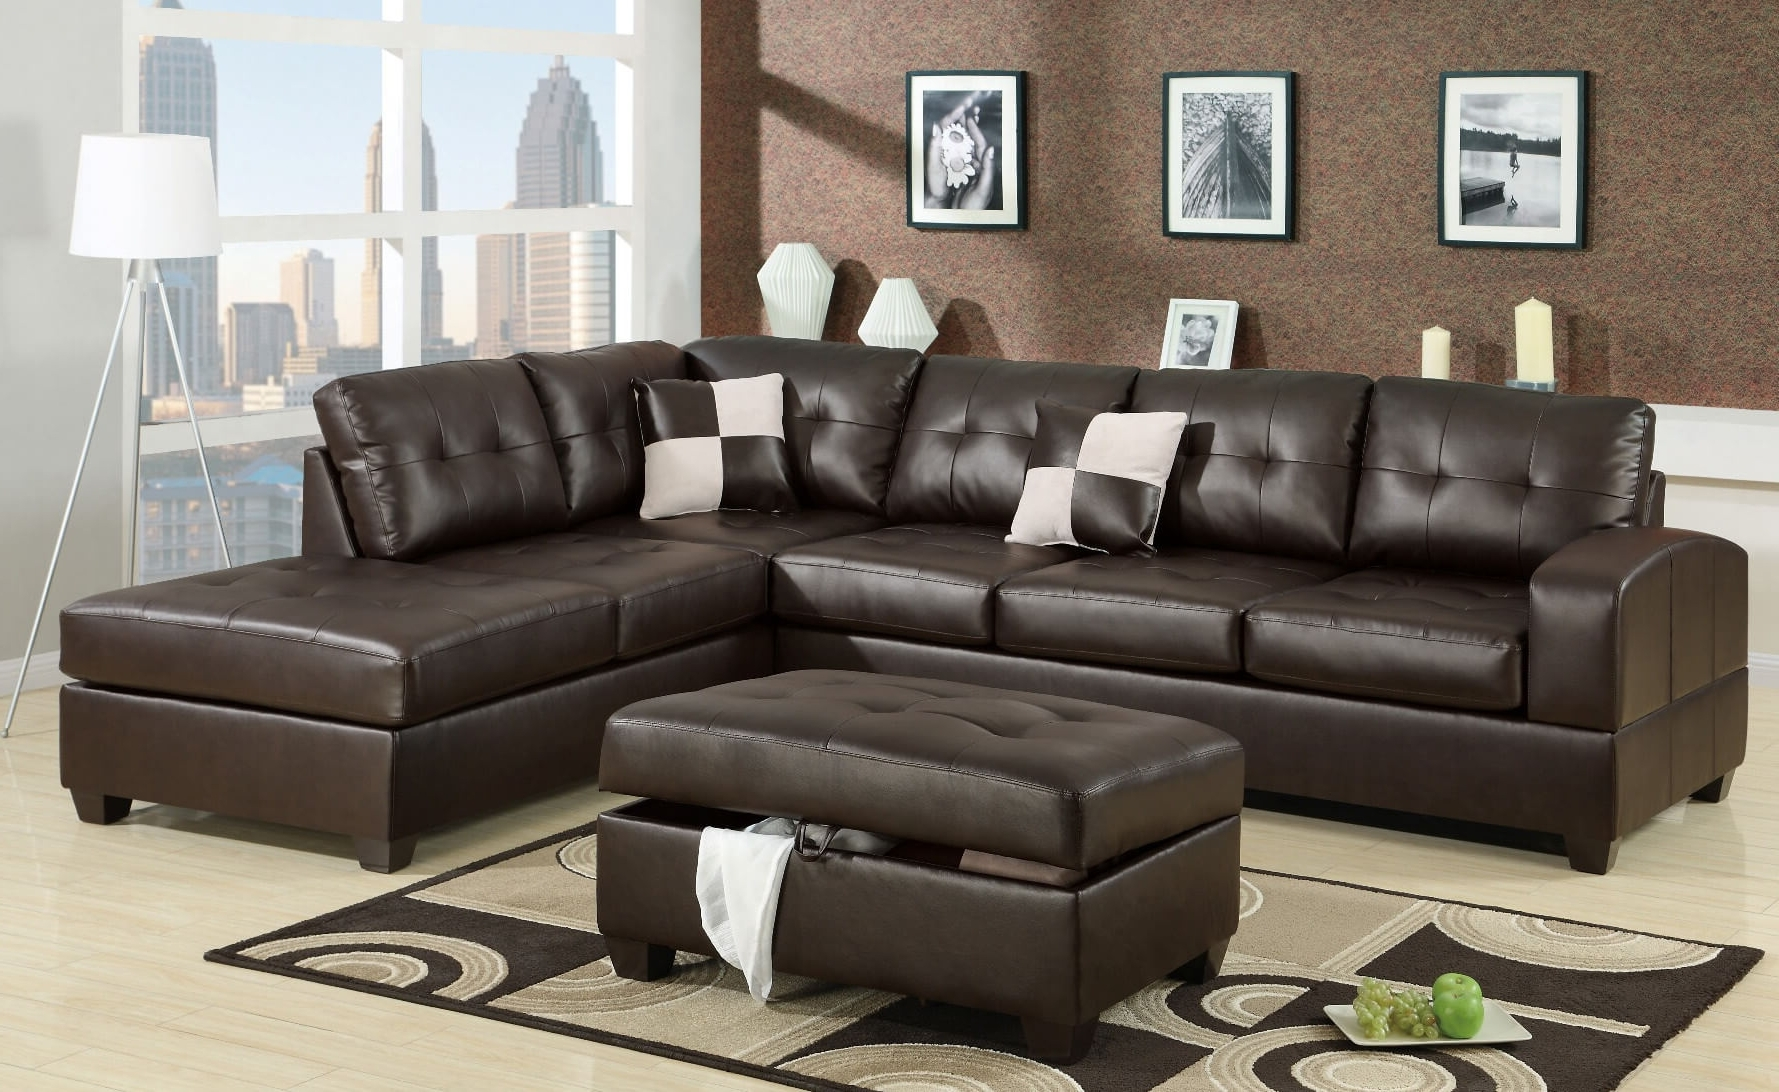 Best And Newest Sectional Sofas Under $500 – Hotelsbacau Within Sectional Sofas Under  (View 1 of 15)